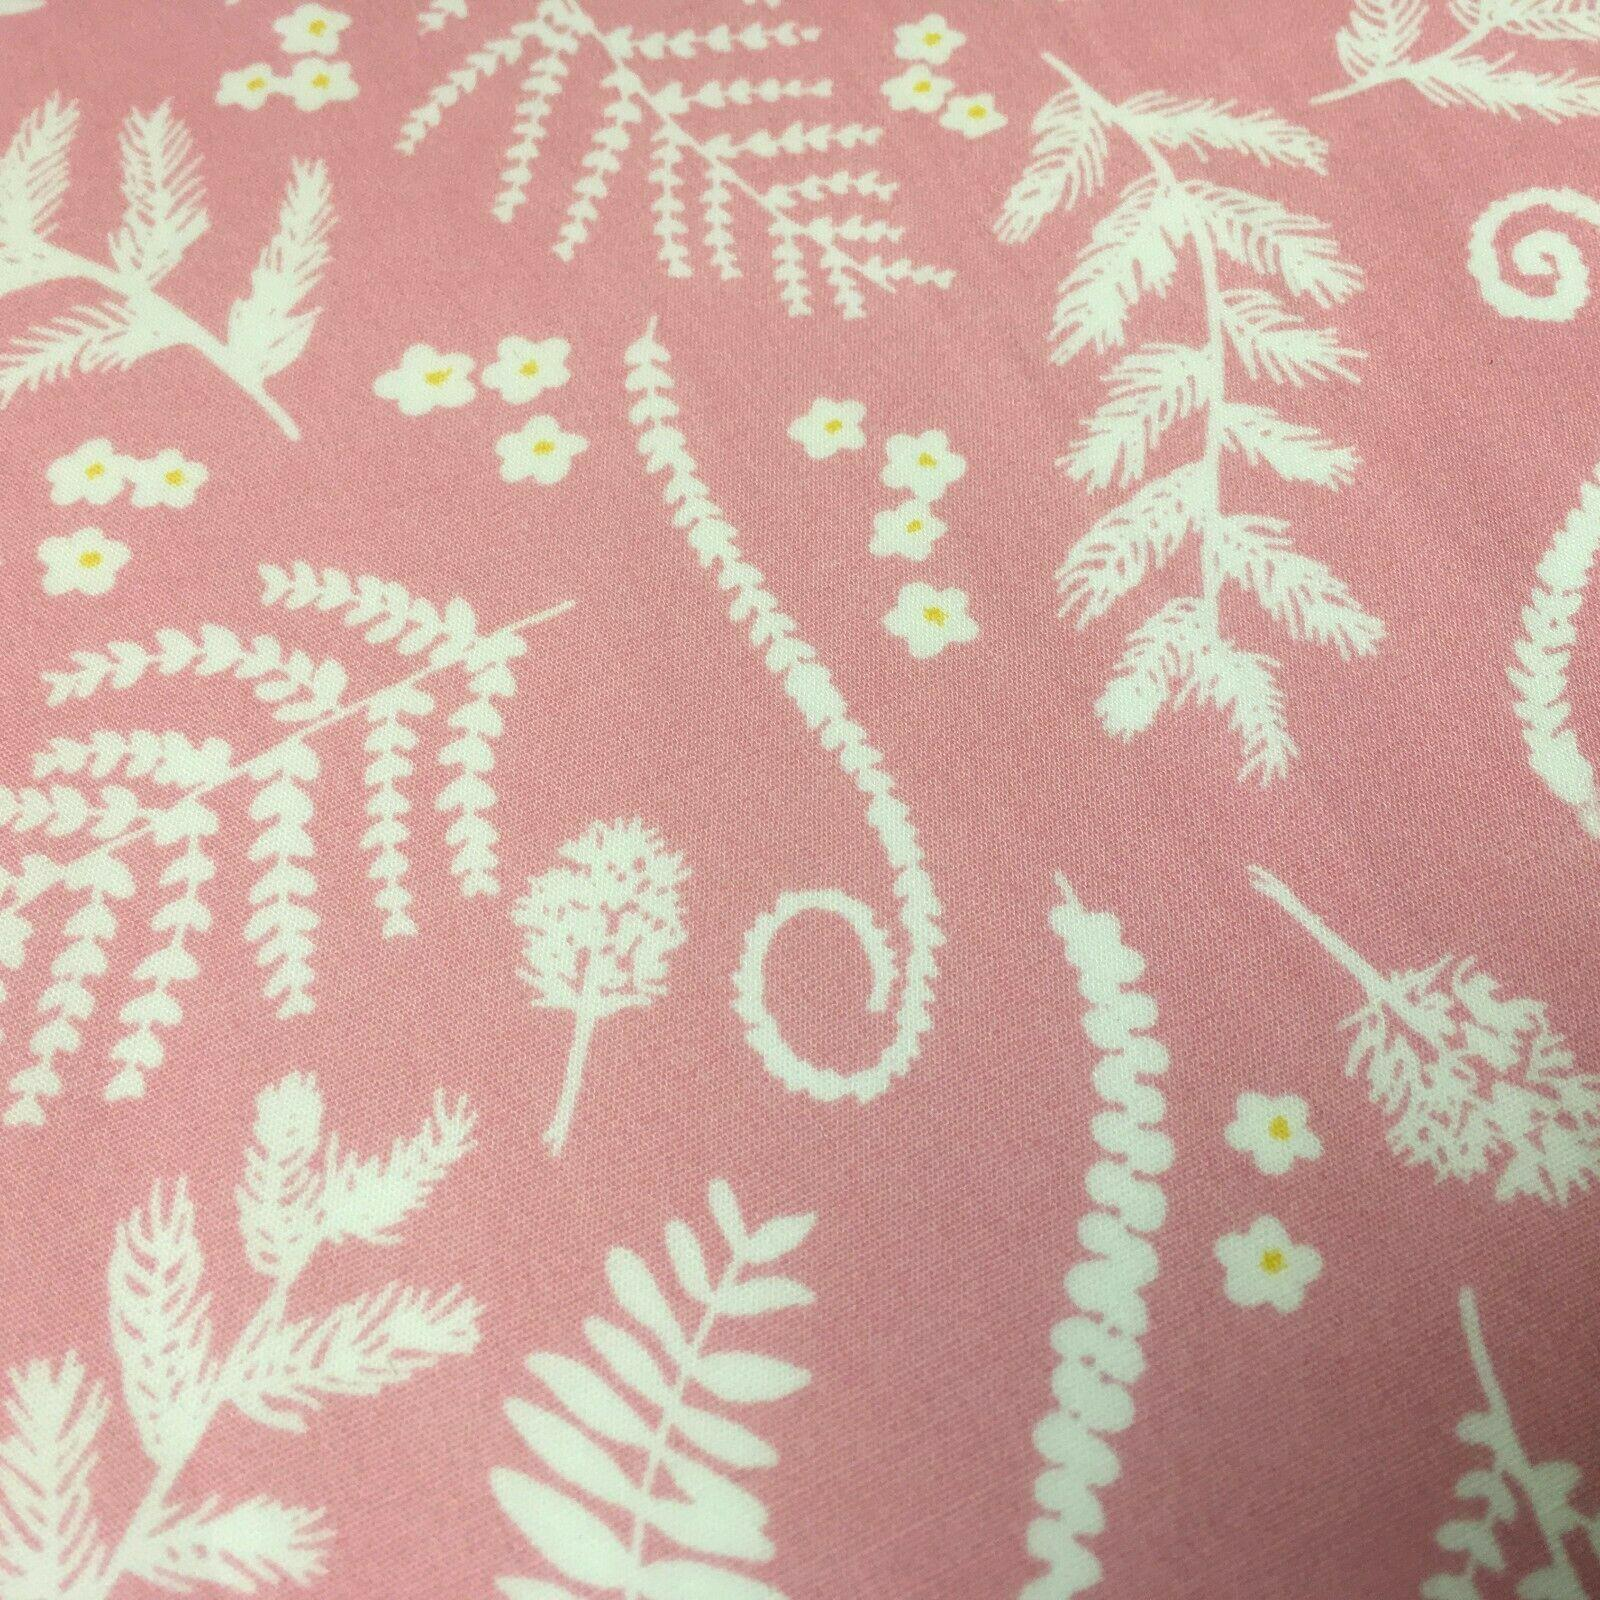 Pink and White Floral 100% Cotton Dress Fabric 110cm Wide MH1041 Mtex